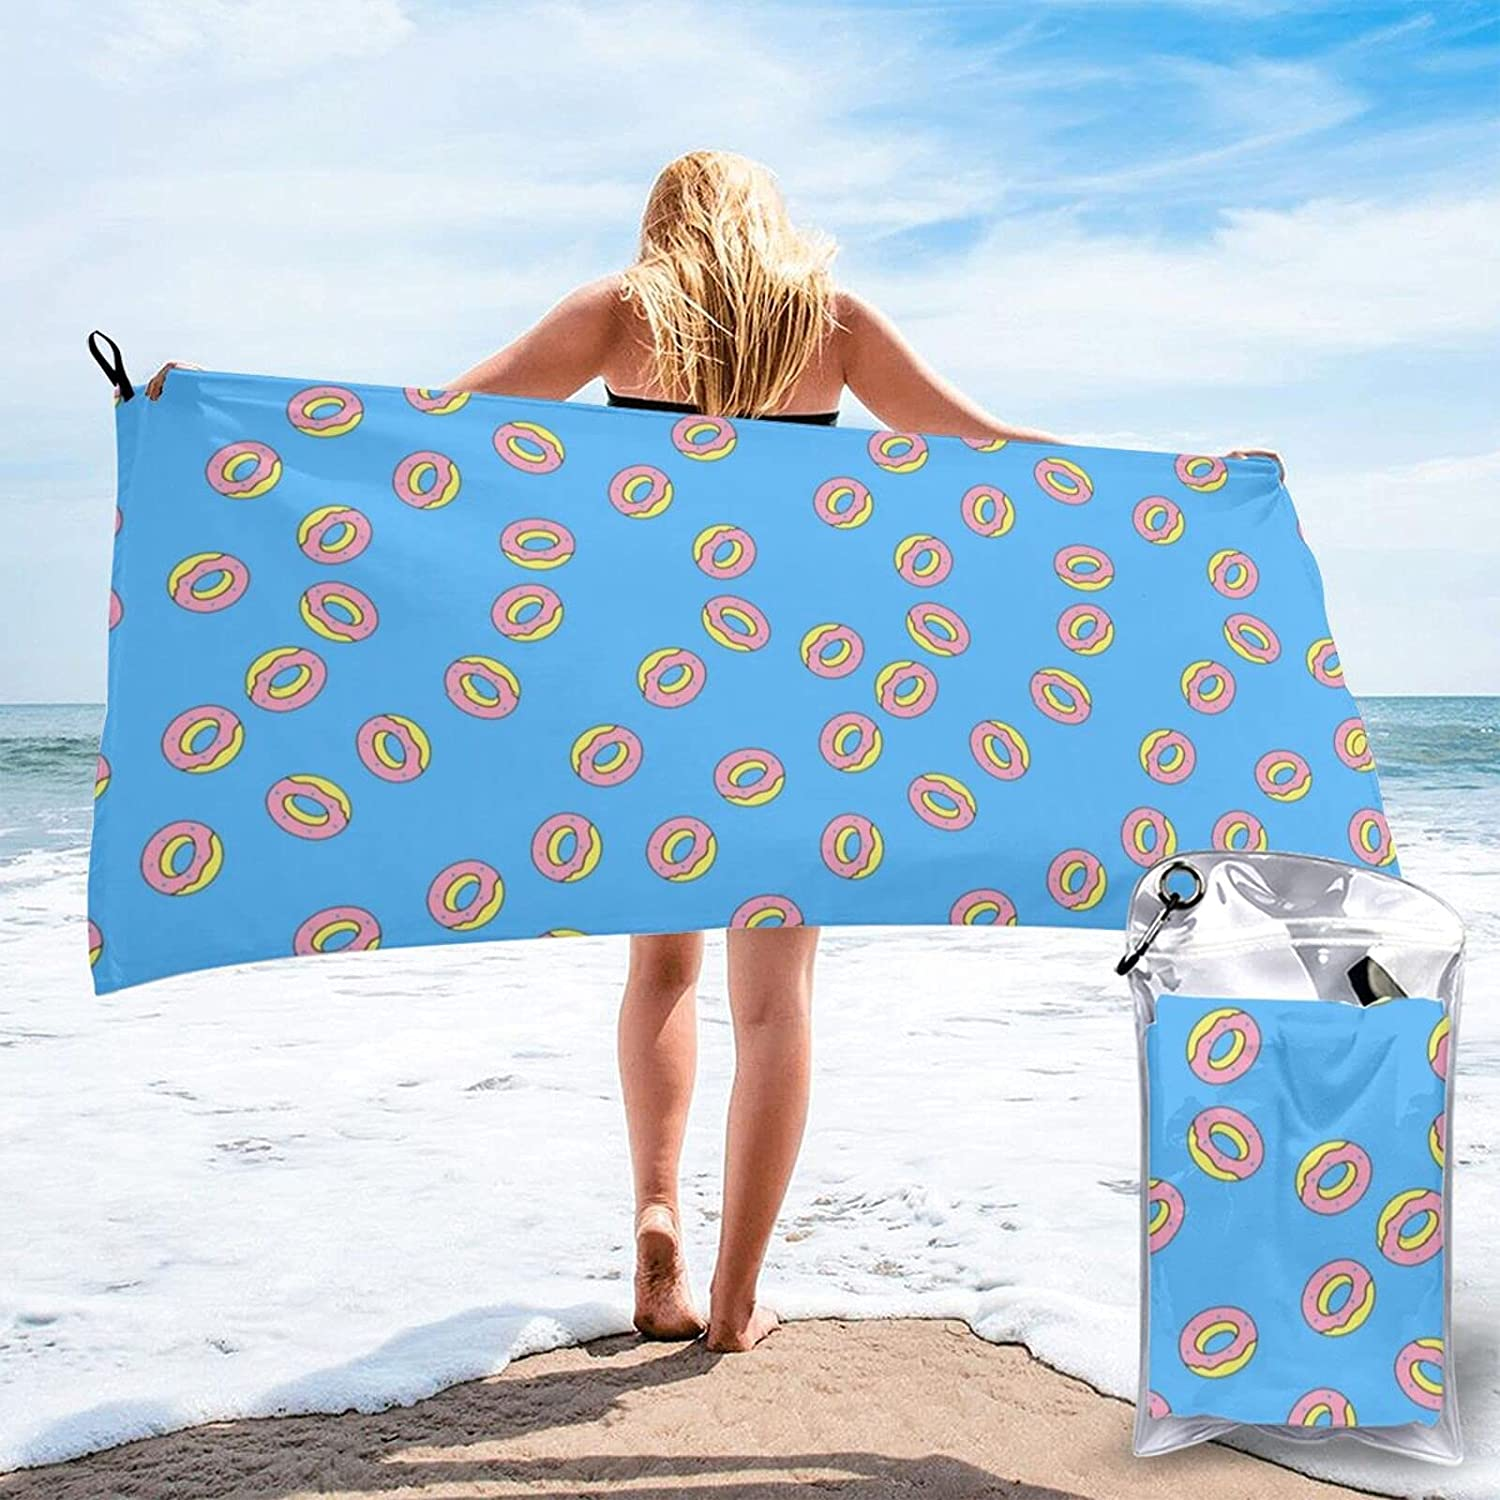 Popular products NiYoung Bath Easy-to-use Towels Donut Food Wash Polyest Pattern Cloths 100%